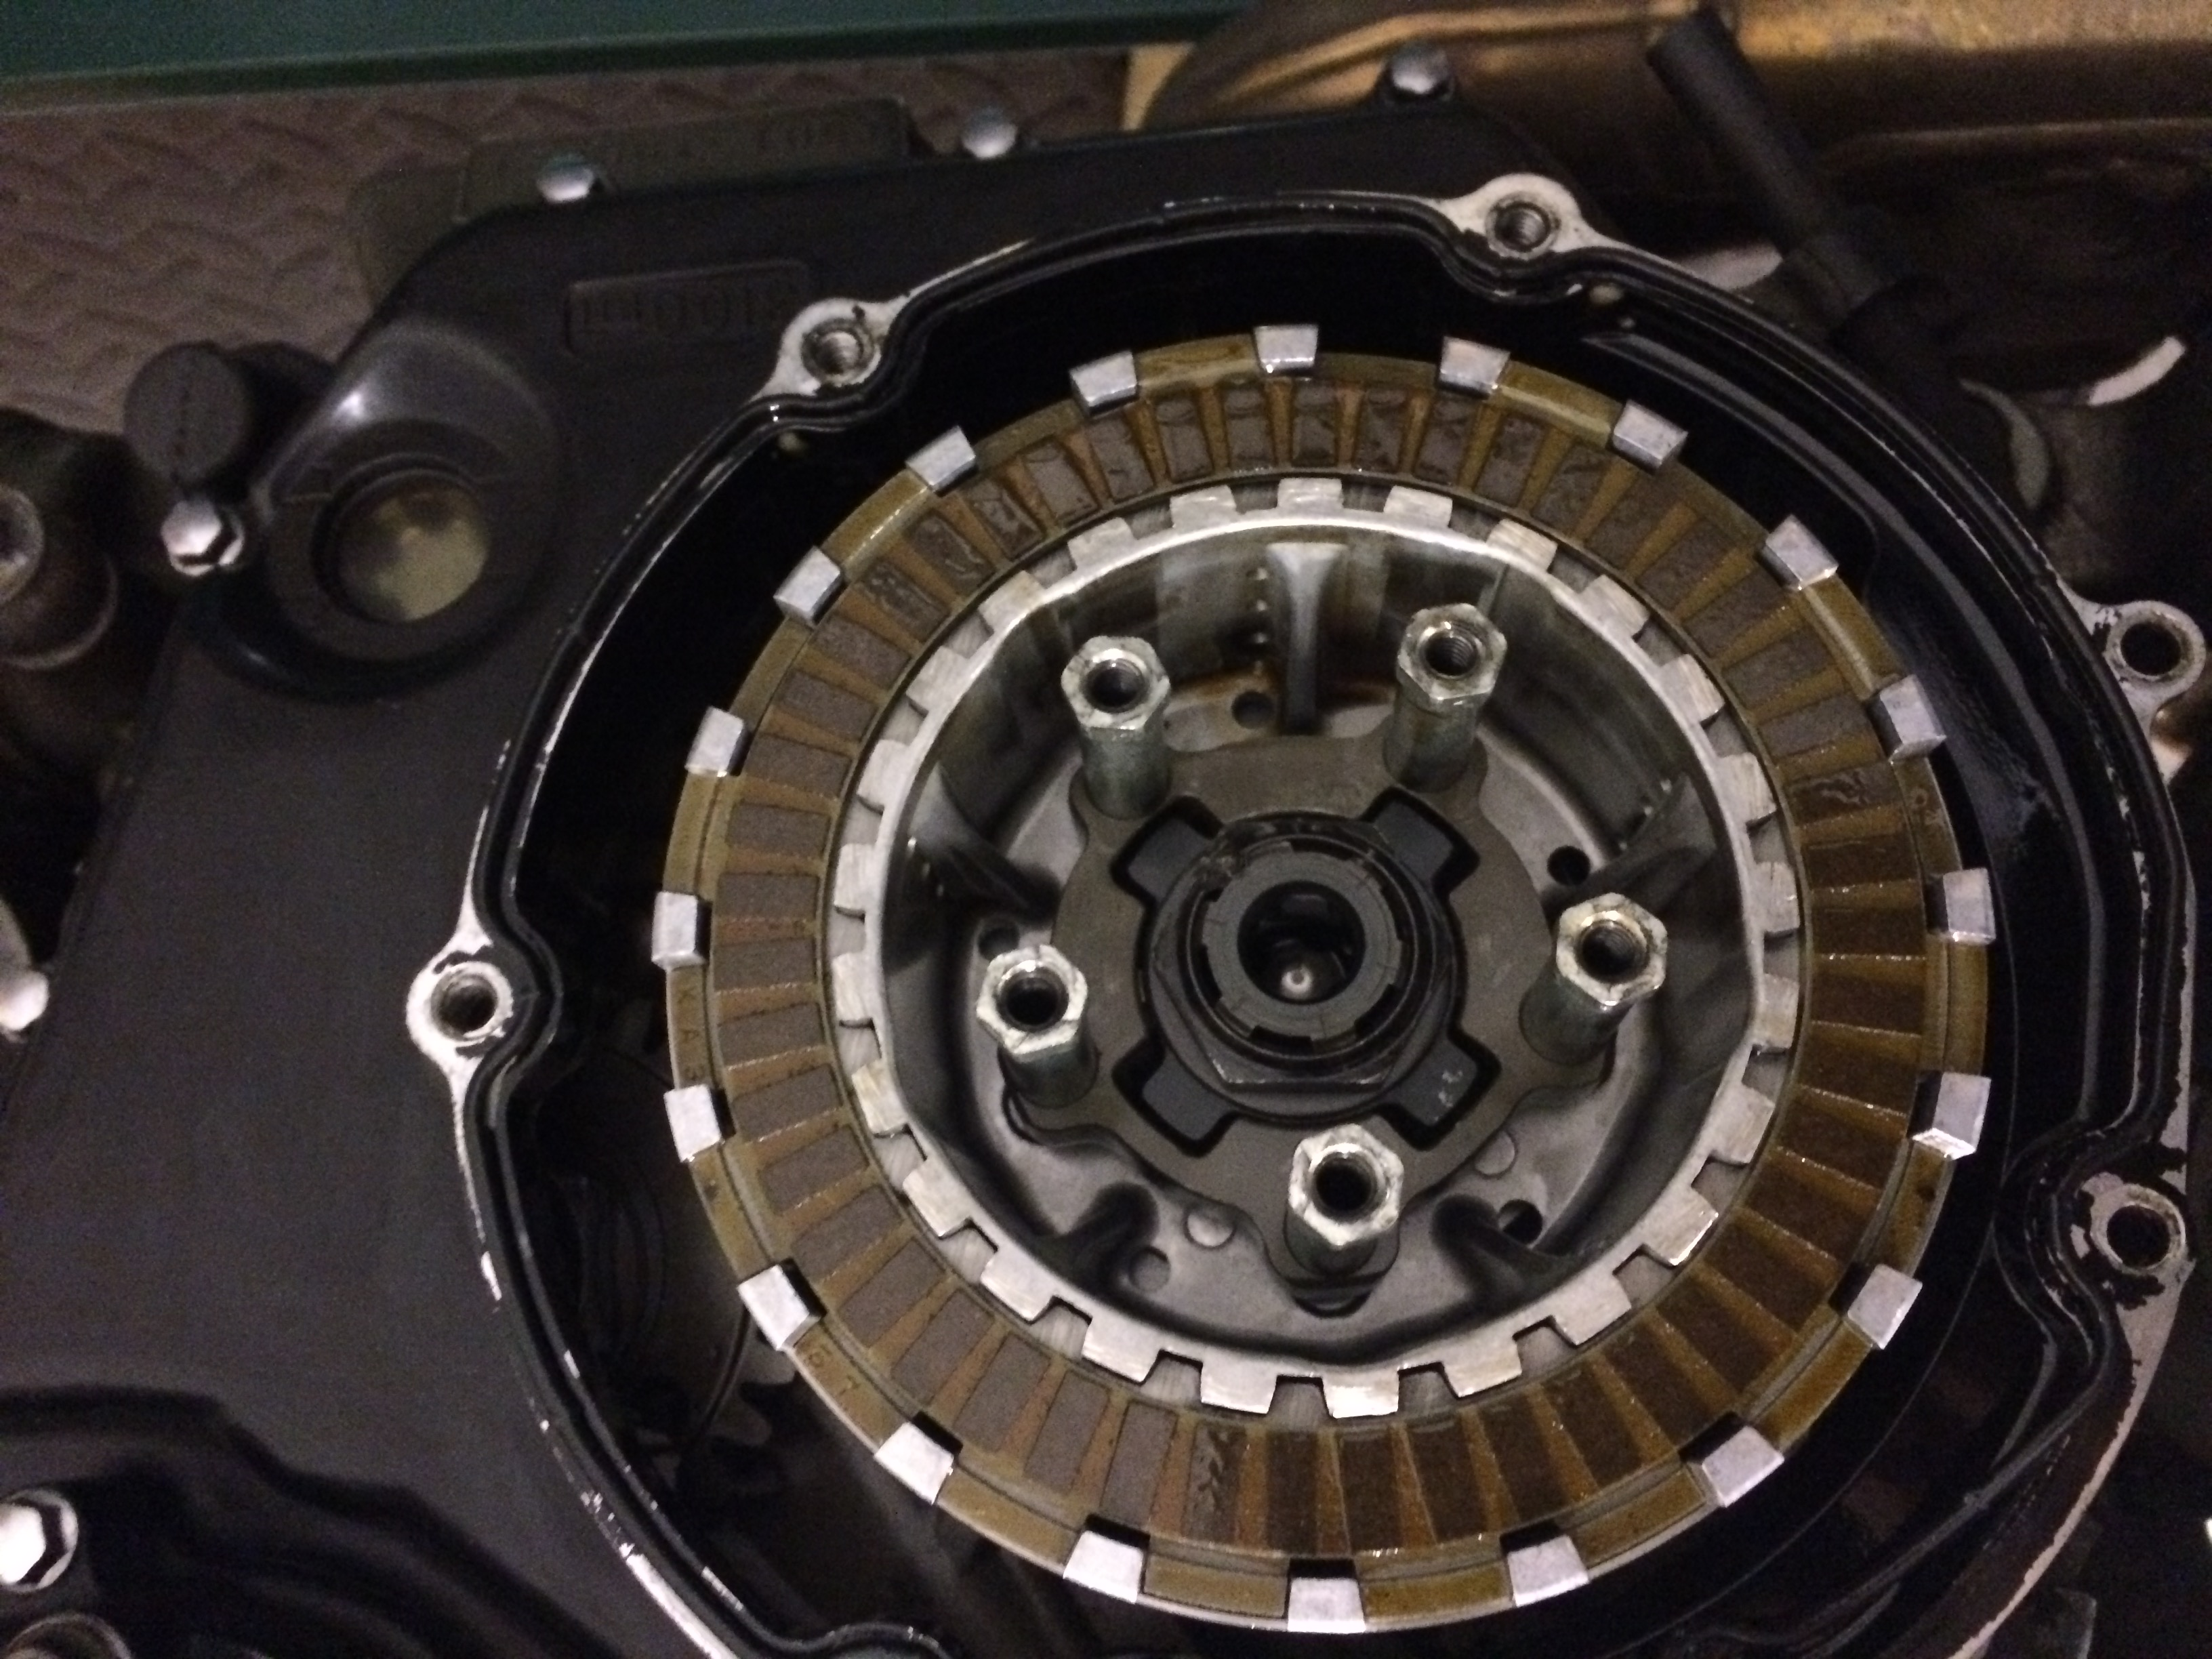 Welded clutch, question on removal